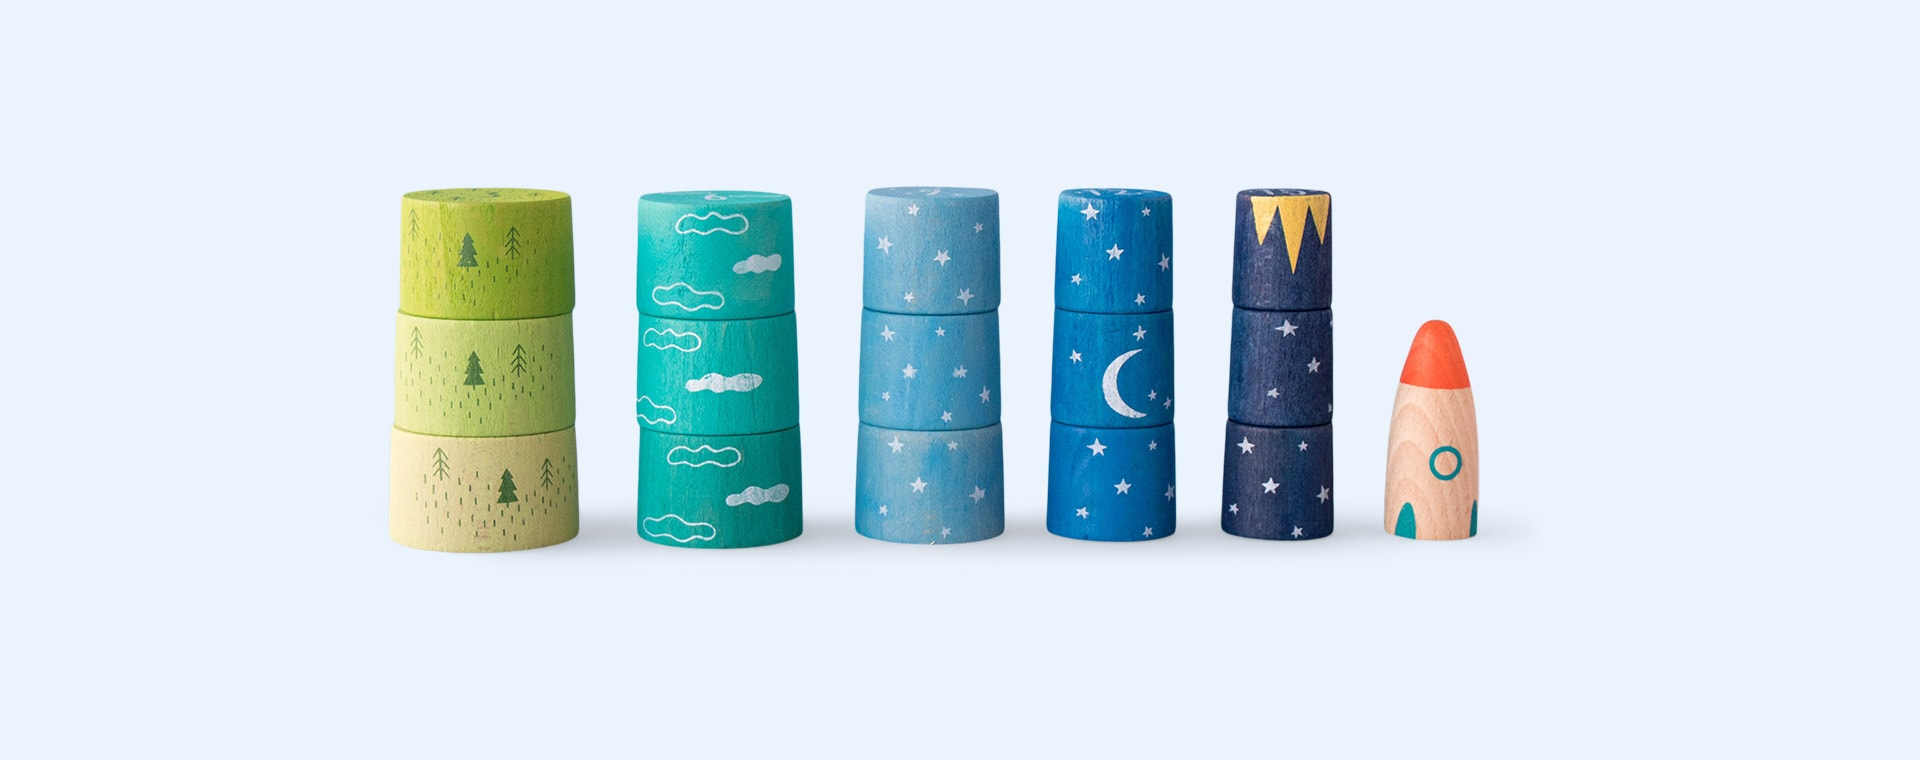 Multi Londji Up To The Stars Stacking Game